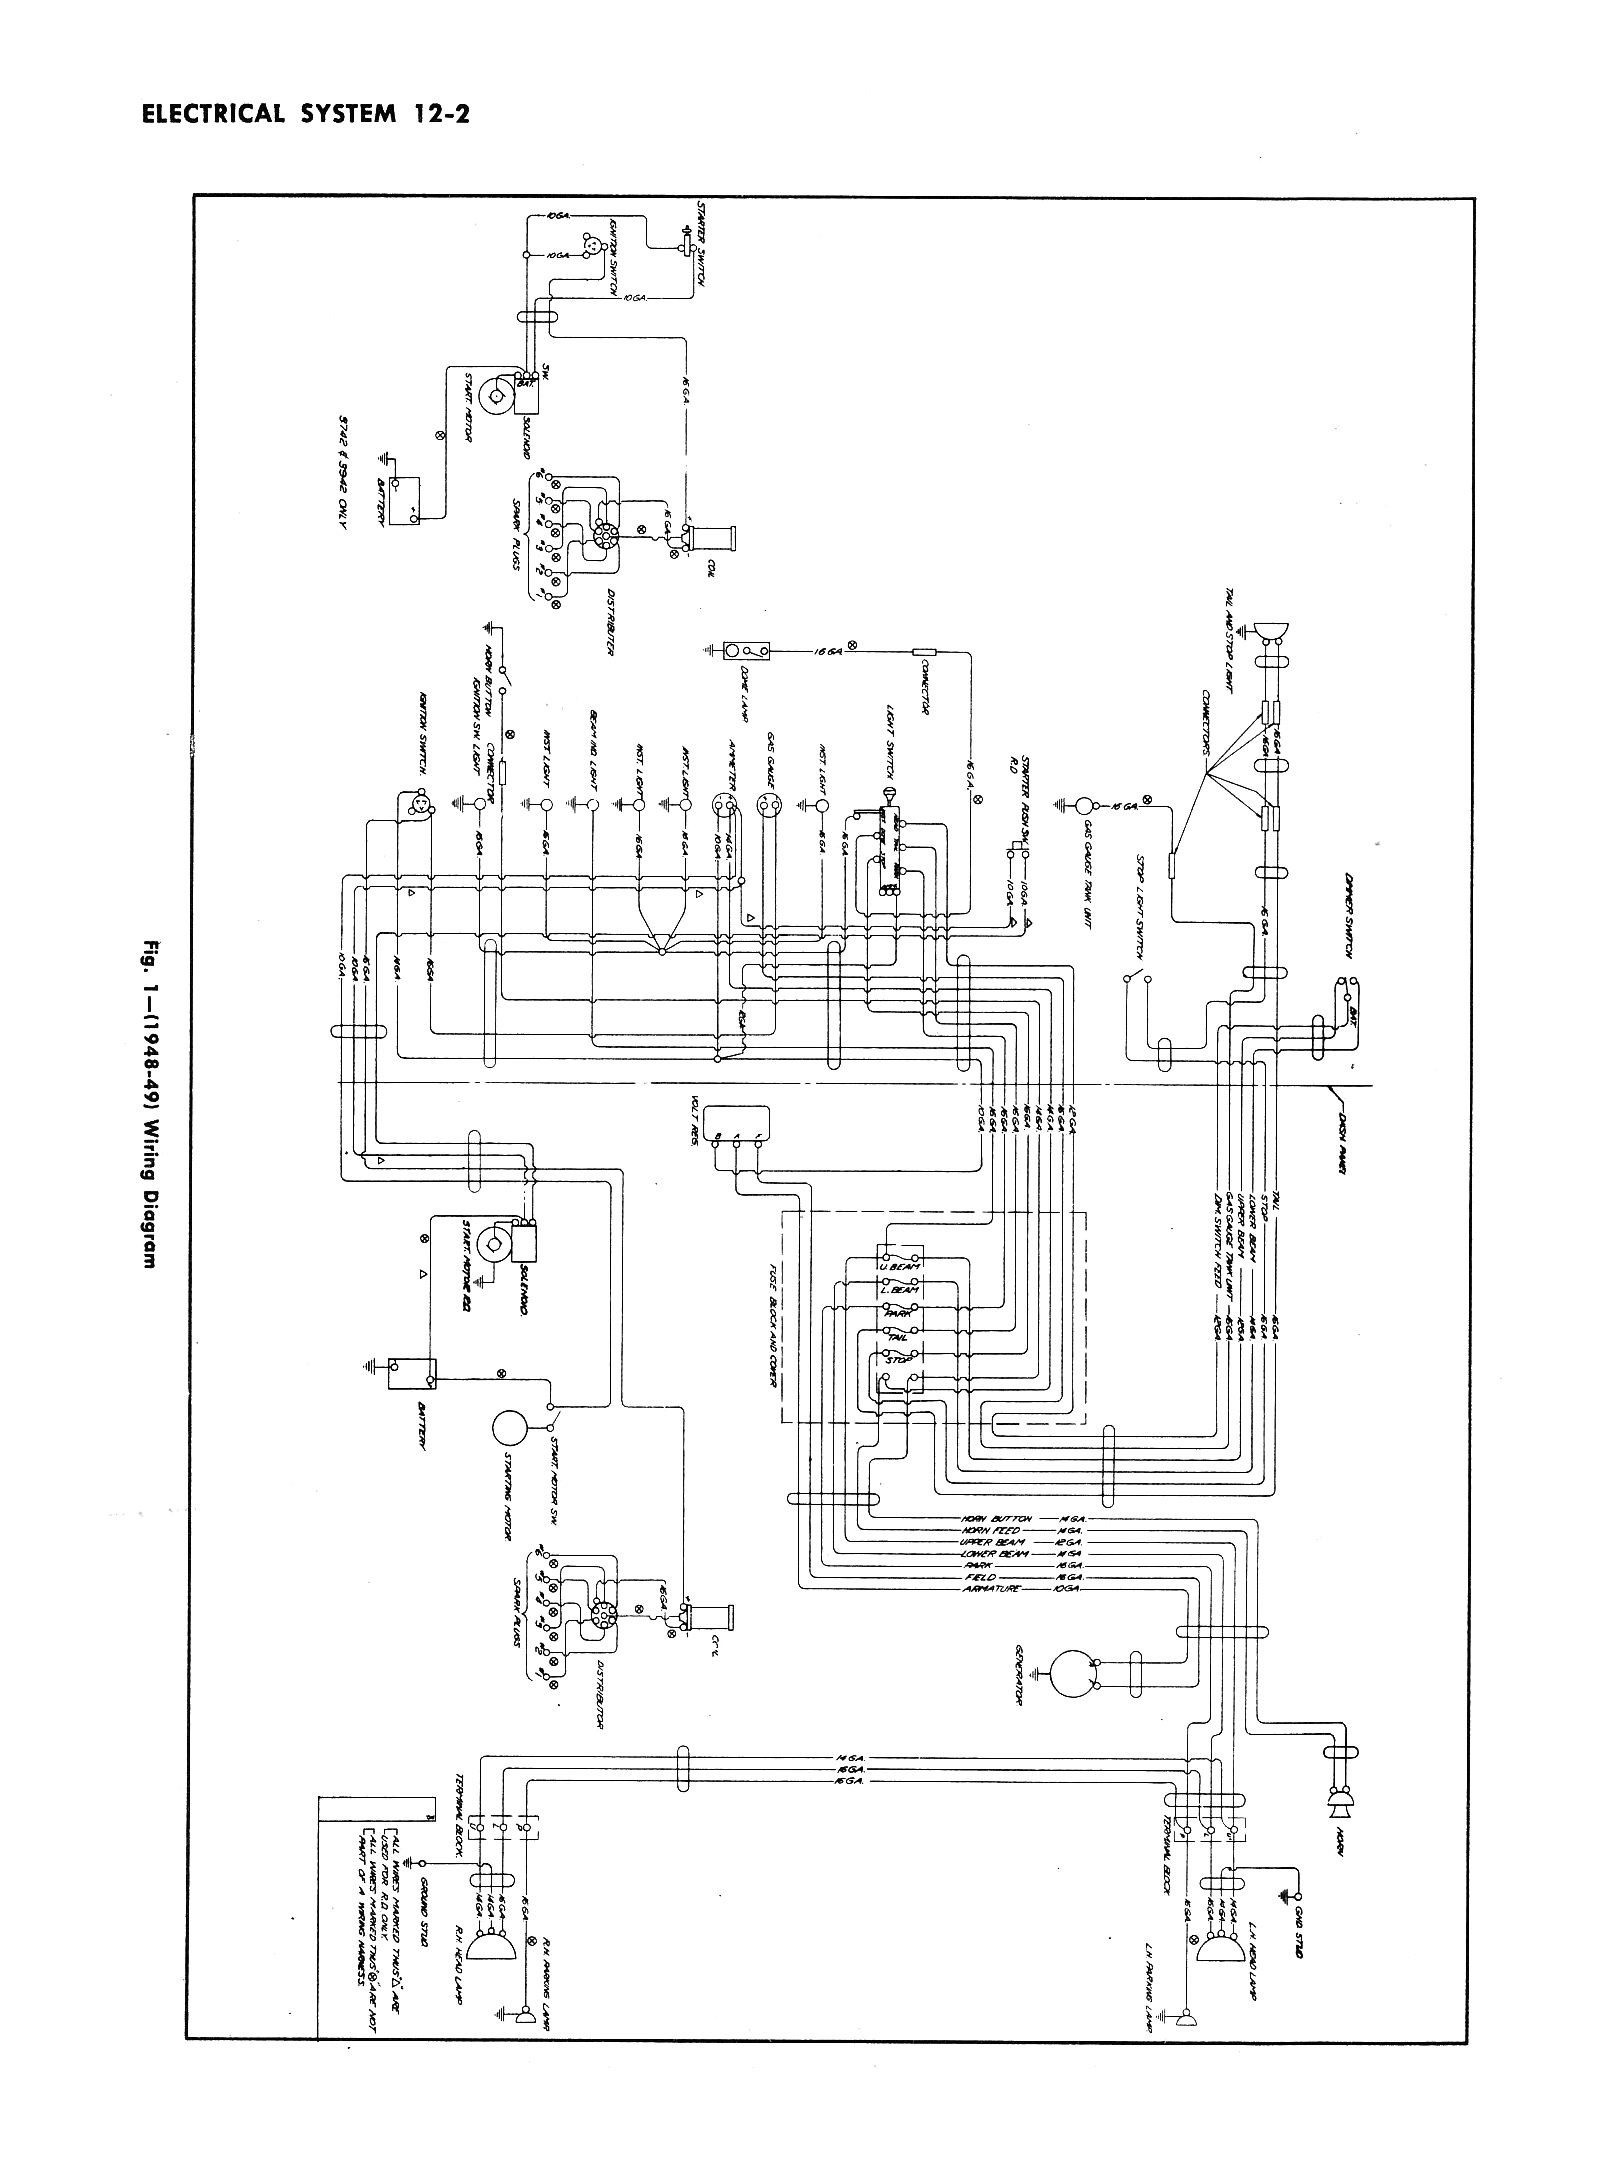 1958 gmc pickup wiring diagram